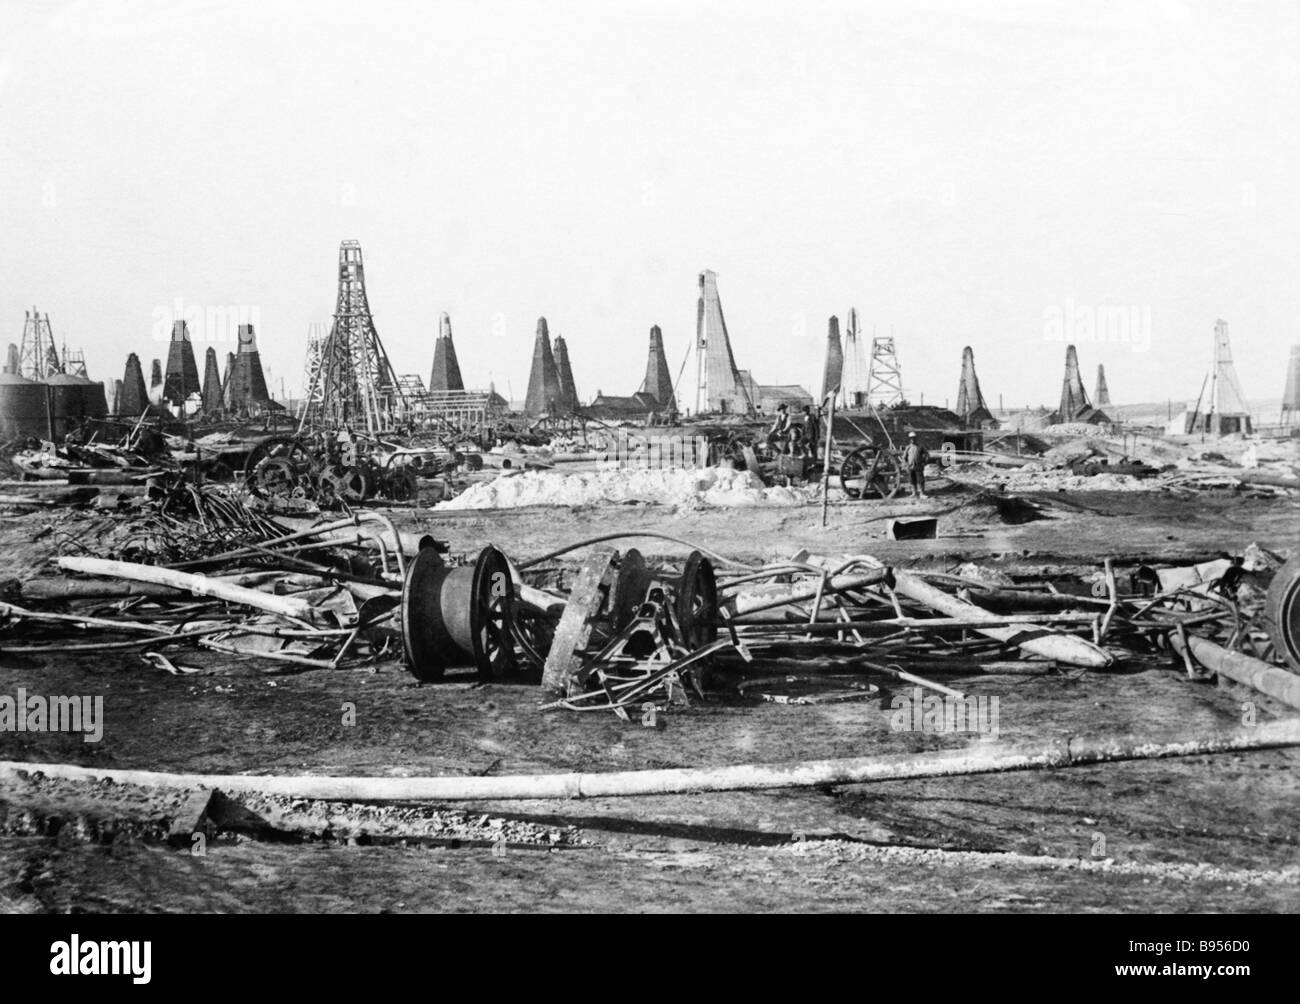 Baku Romany Oil fields Melikov Rothschild Caspian Company Ltd Late 19th century Archives of the Moscow based State - Stock Image